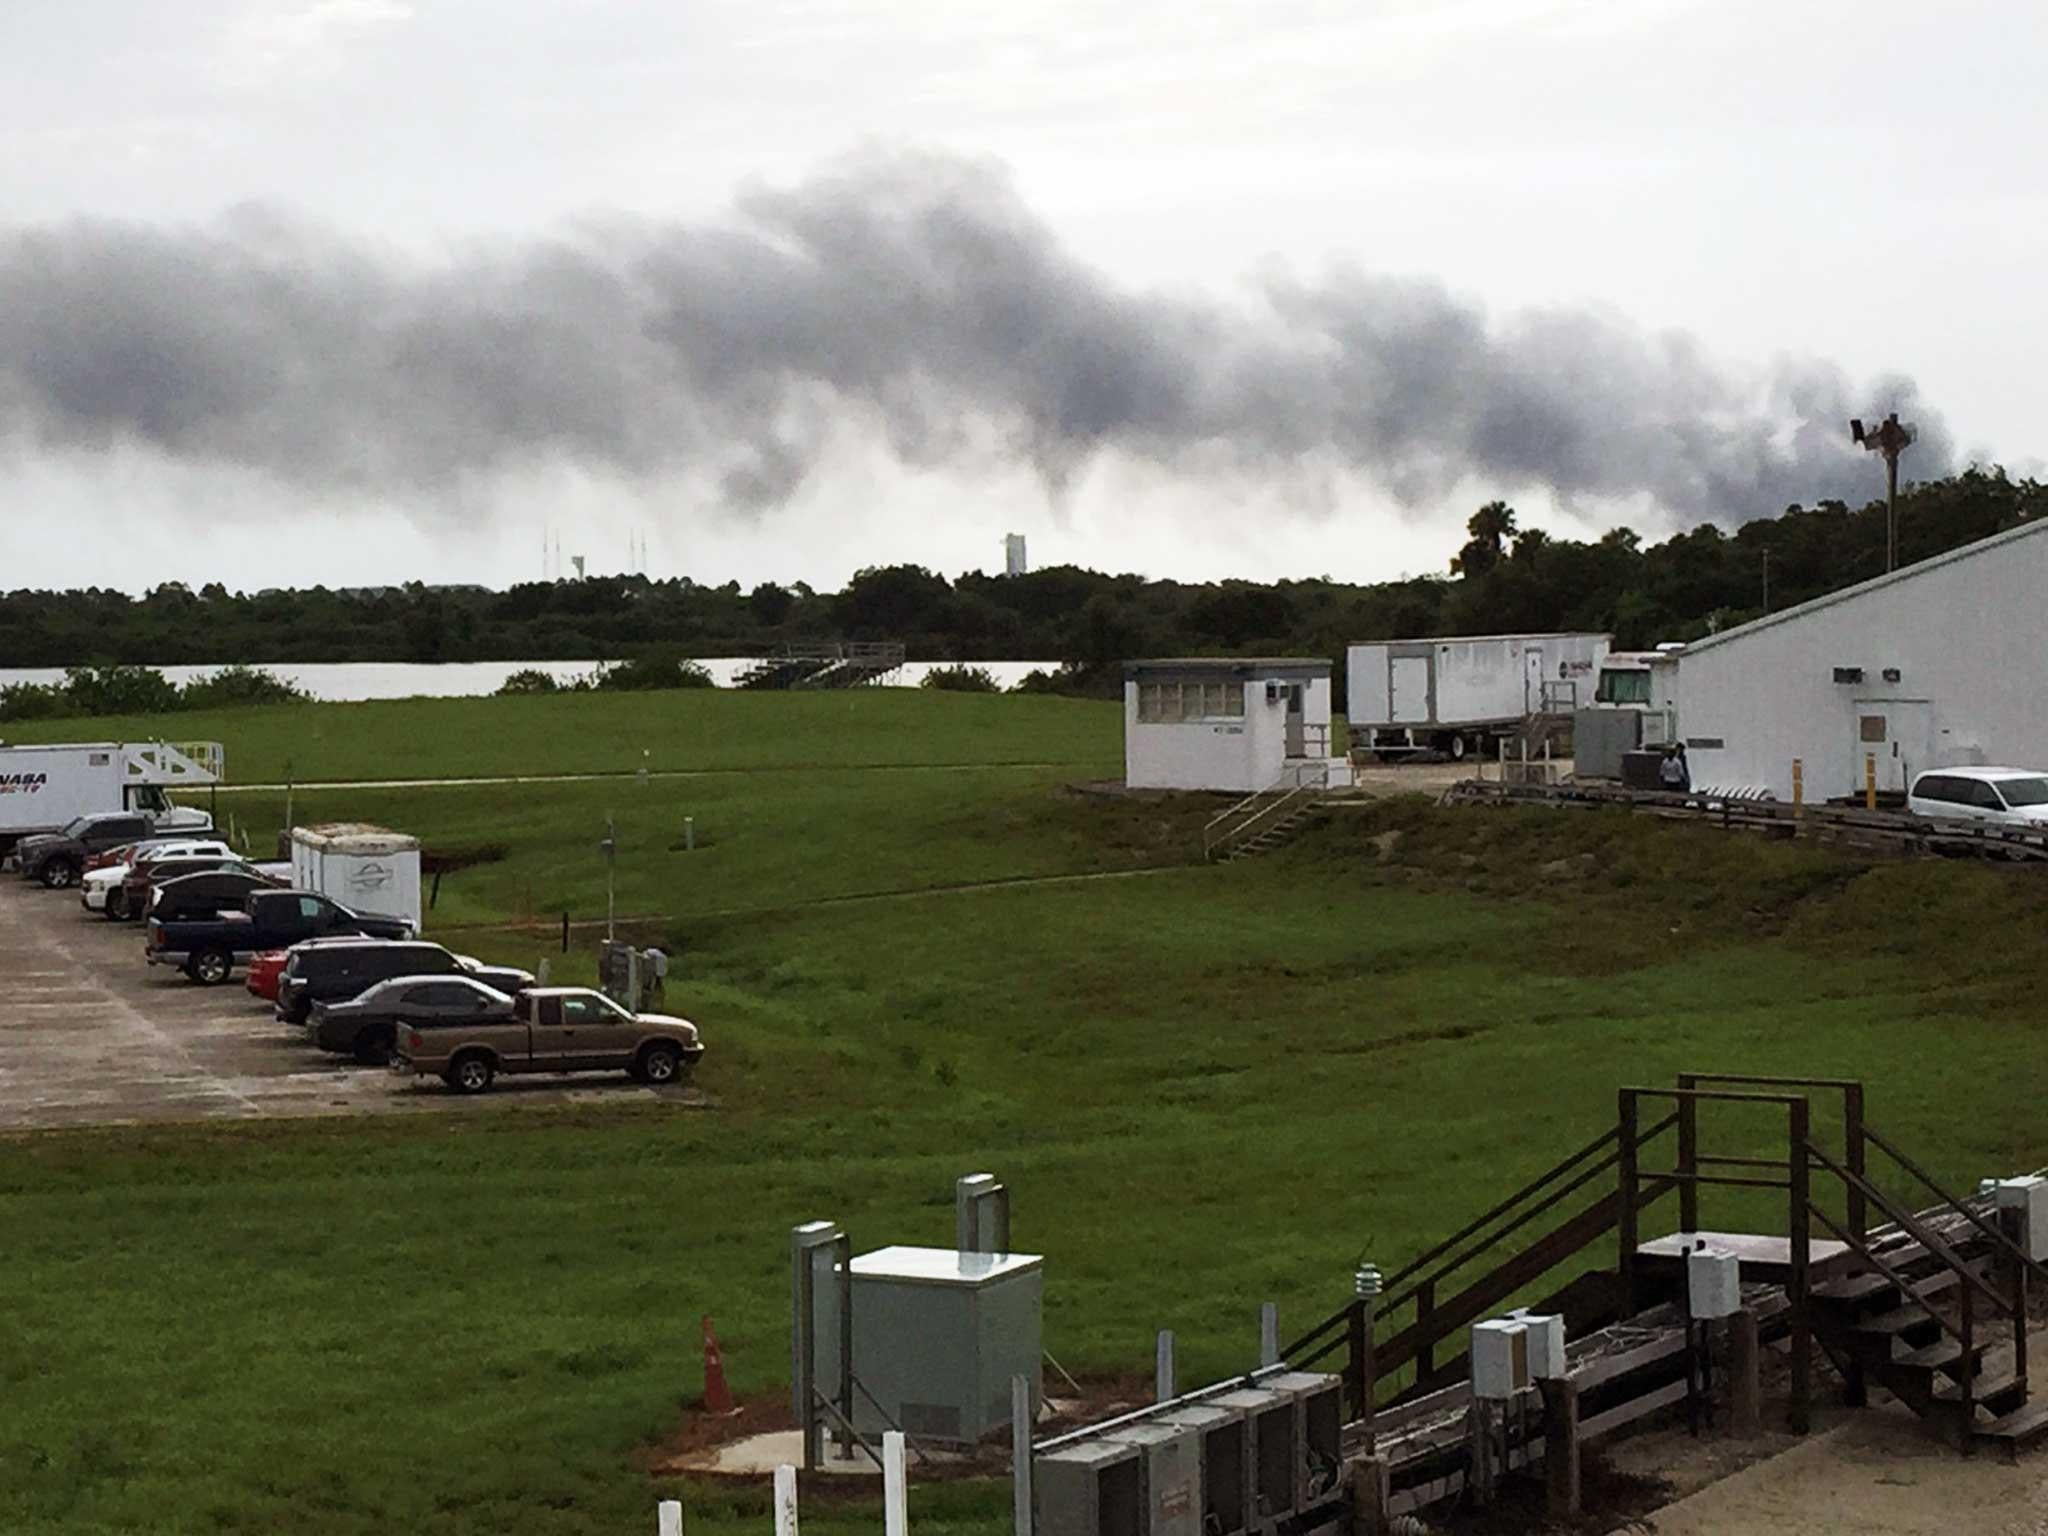 SpaceX explosion destroyed Falcon 9, will cost hundreds of millions of dollars and could cause huge problems for space schedule